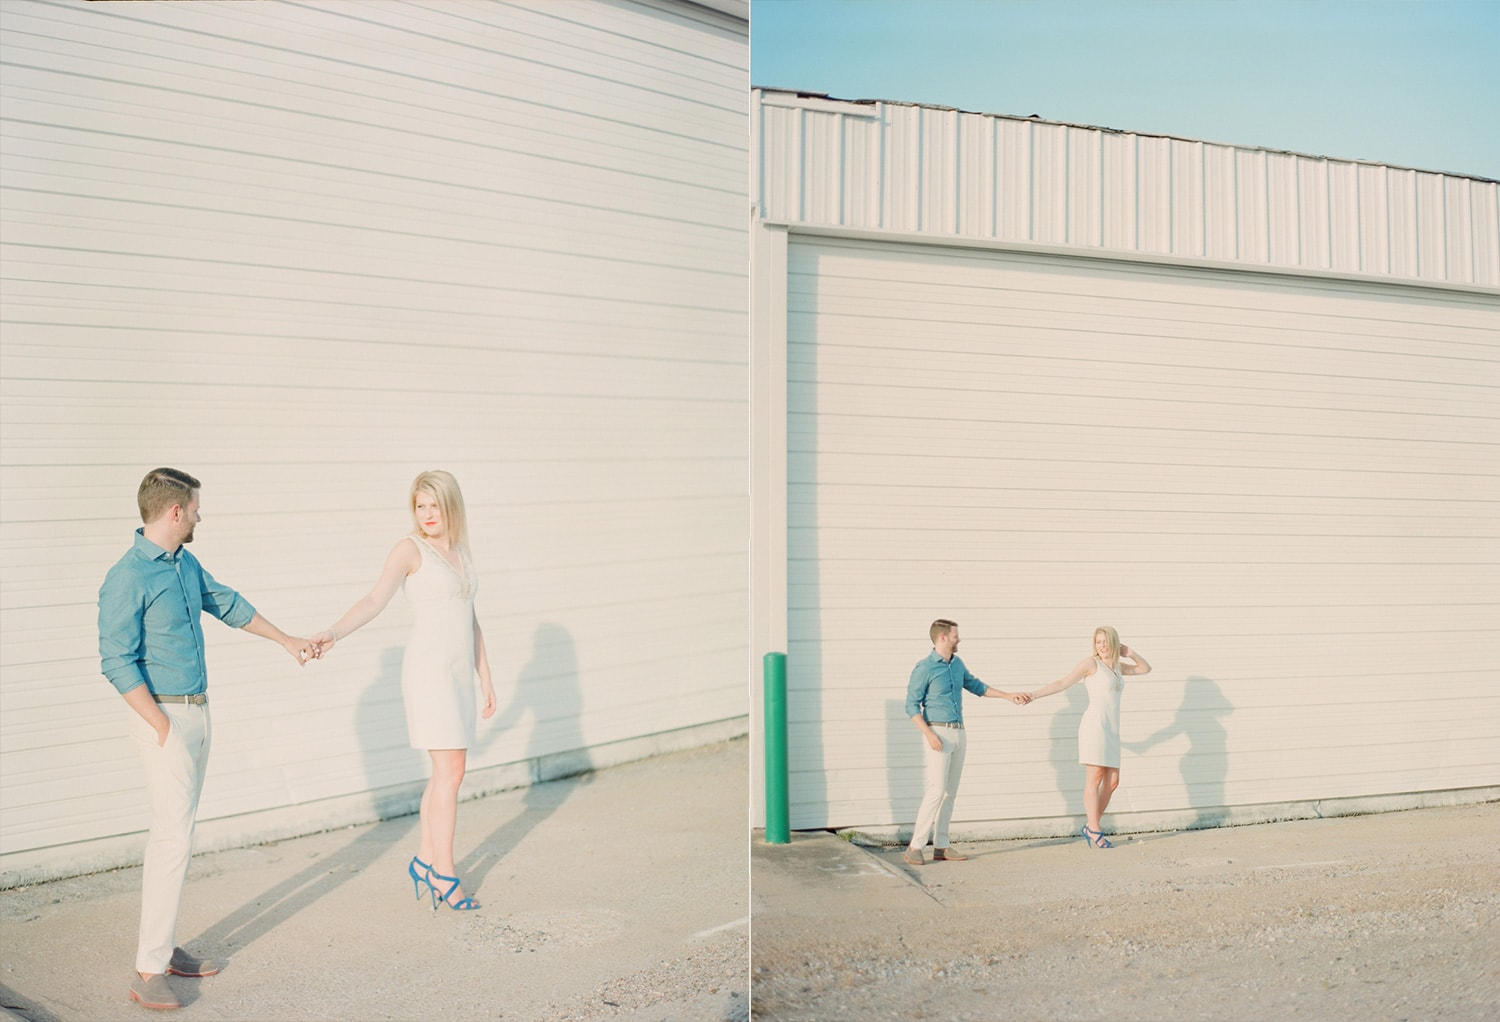 DEEP_ELLUM_TX_FILM_ENGAGEMENT_SHOOT__MATTHEW_MOORE_PHOTOGRAPHY_PAN_007.jpg